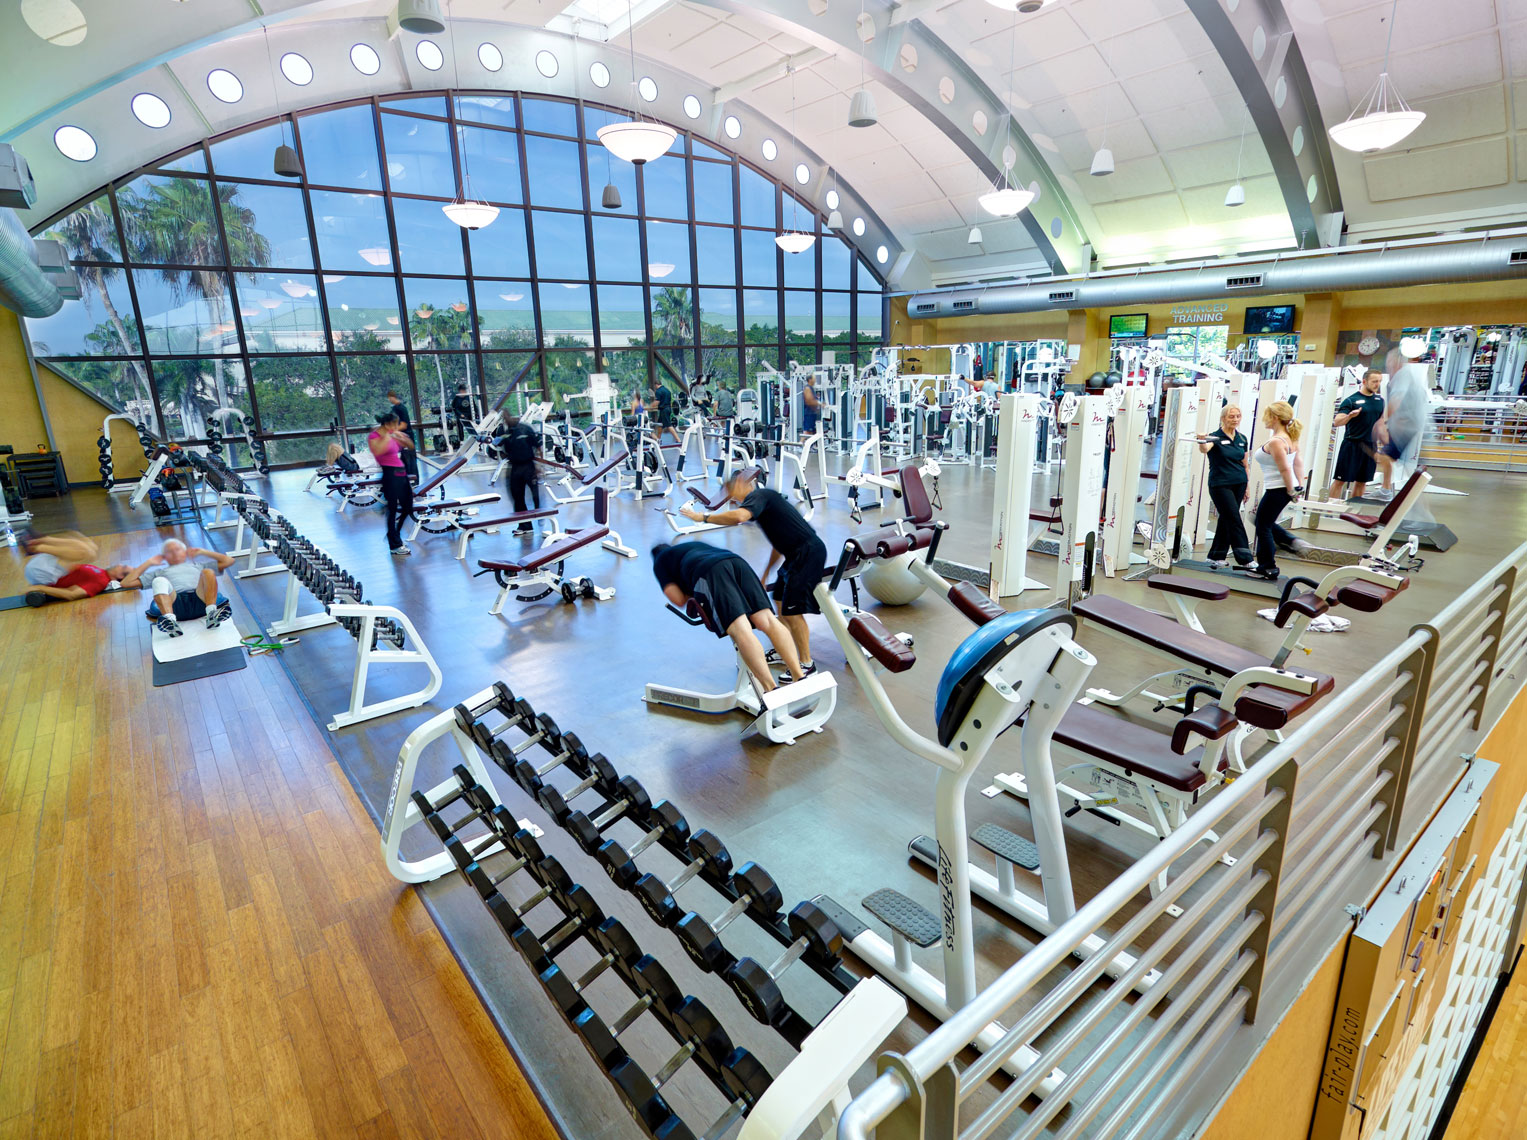 Life Time Fitness weight room/weight equiptment/architectural photo